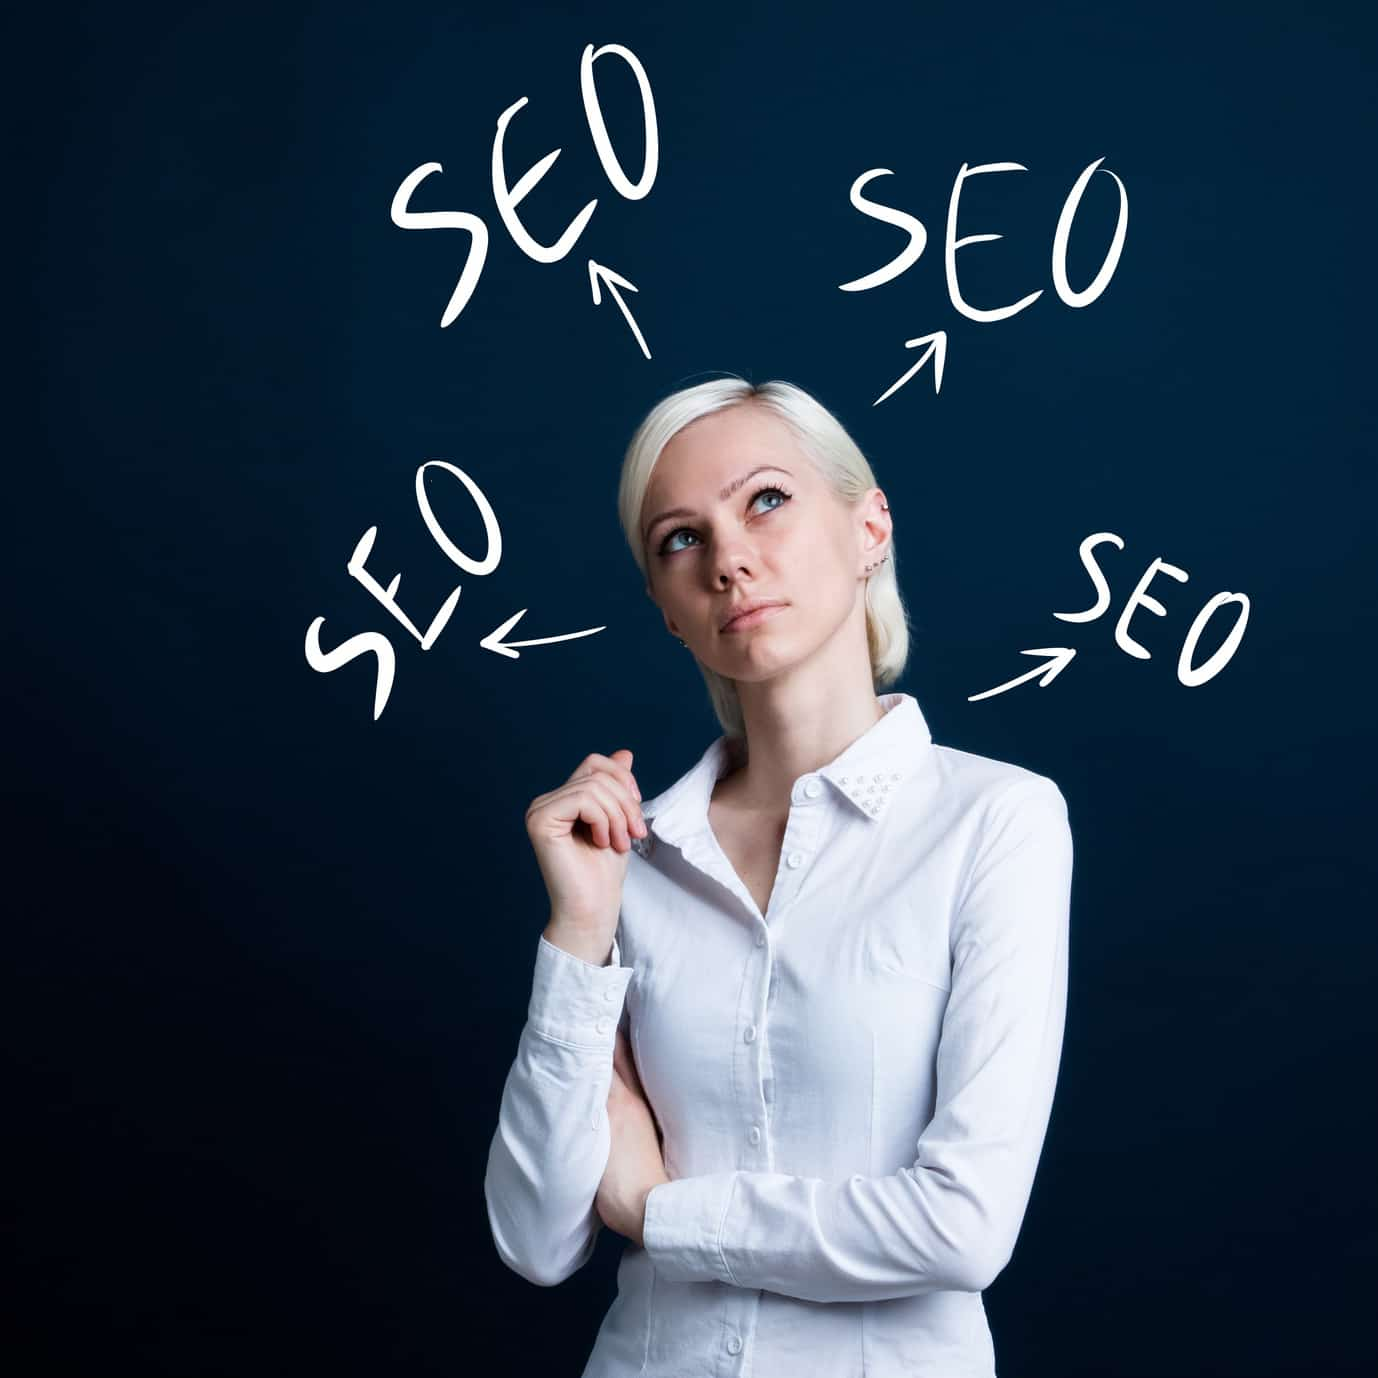 seo for entrepreneurs